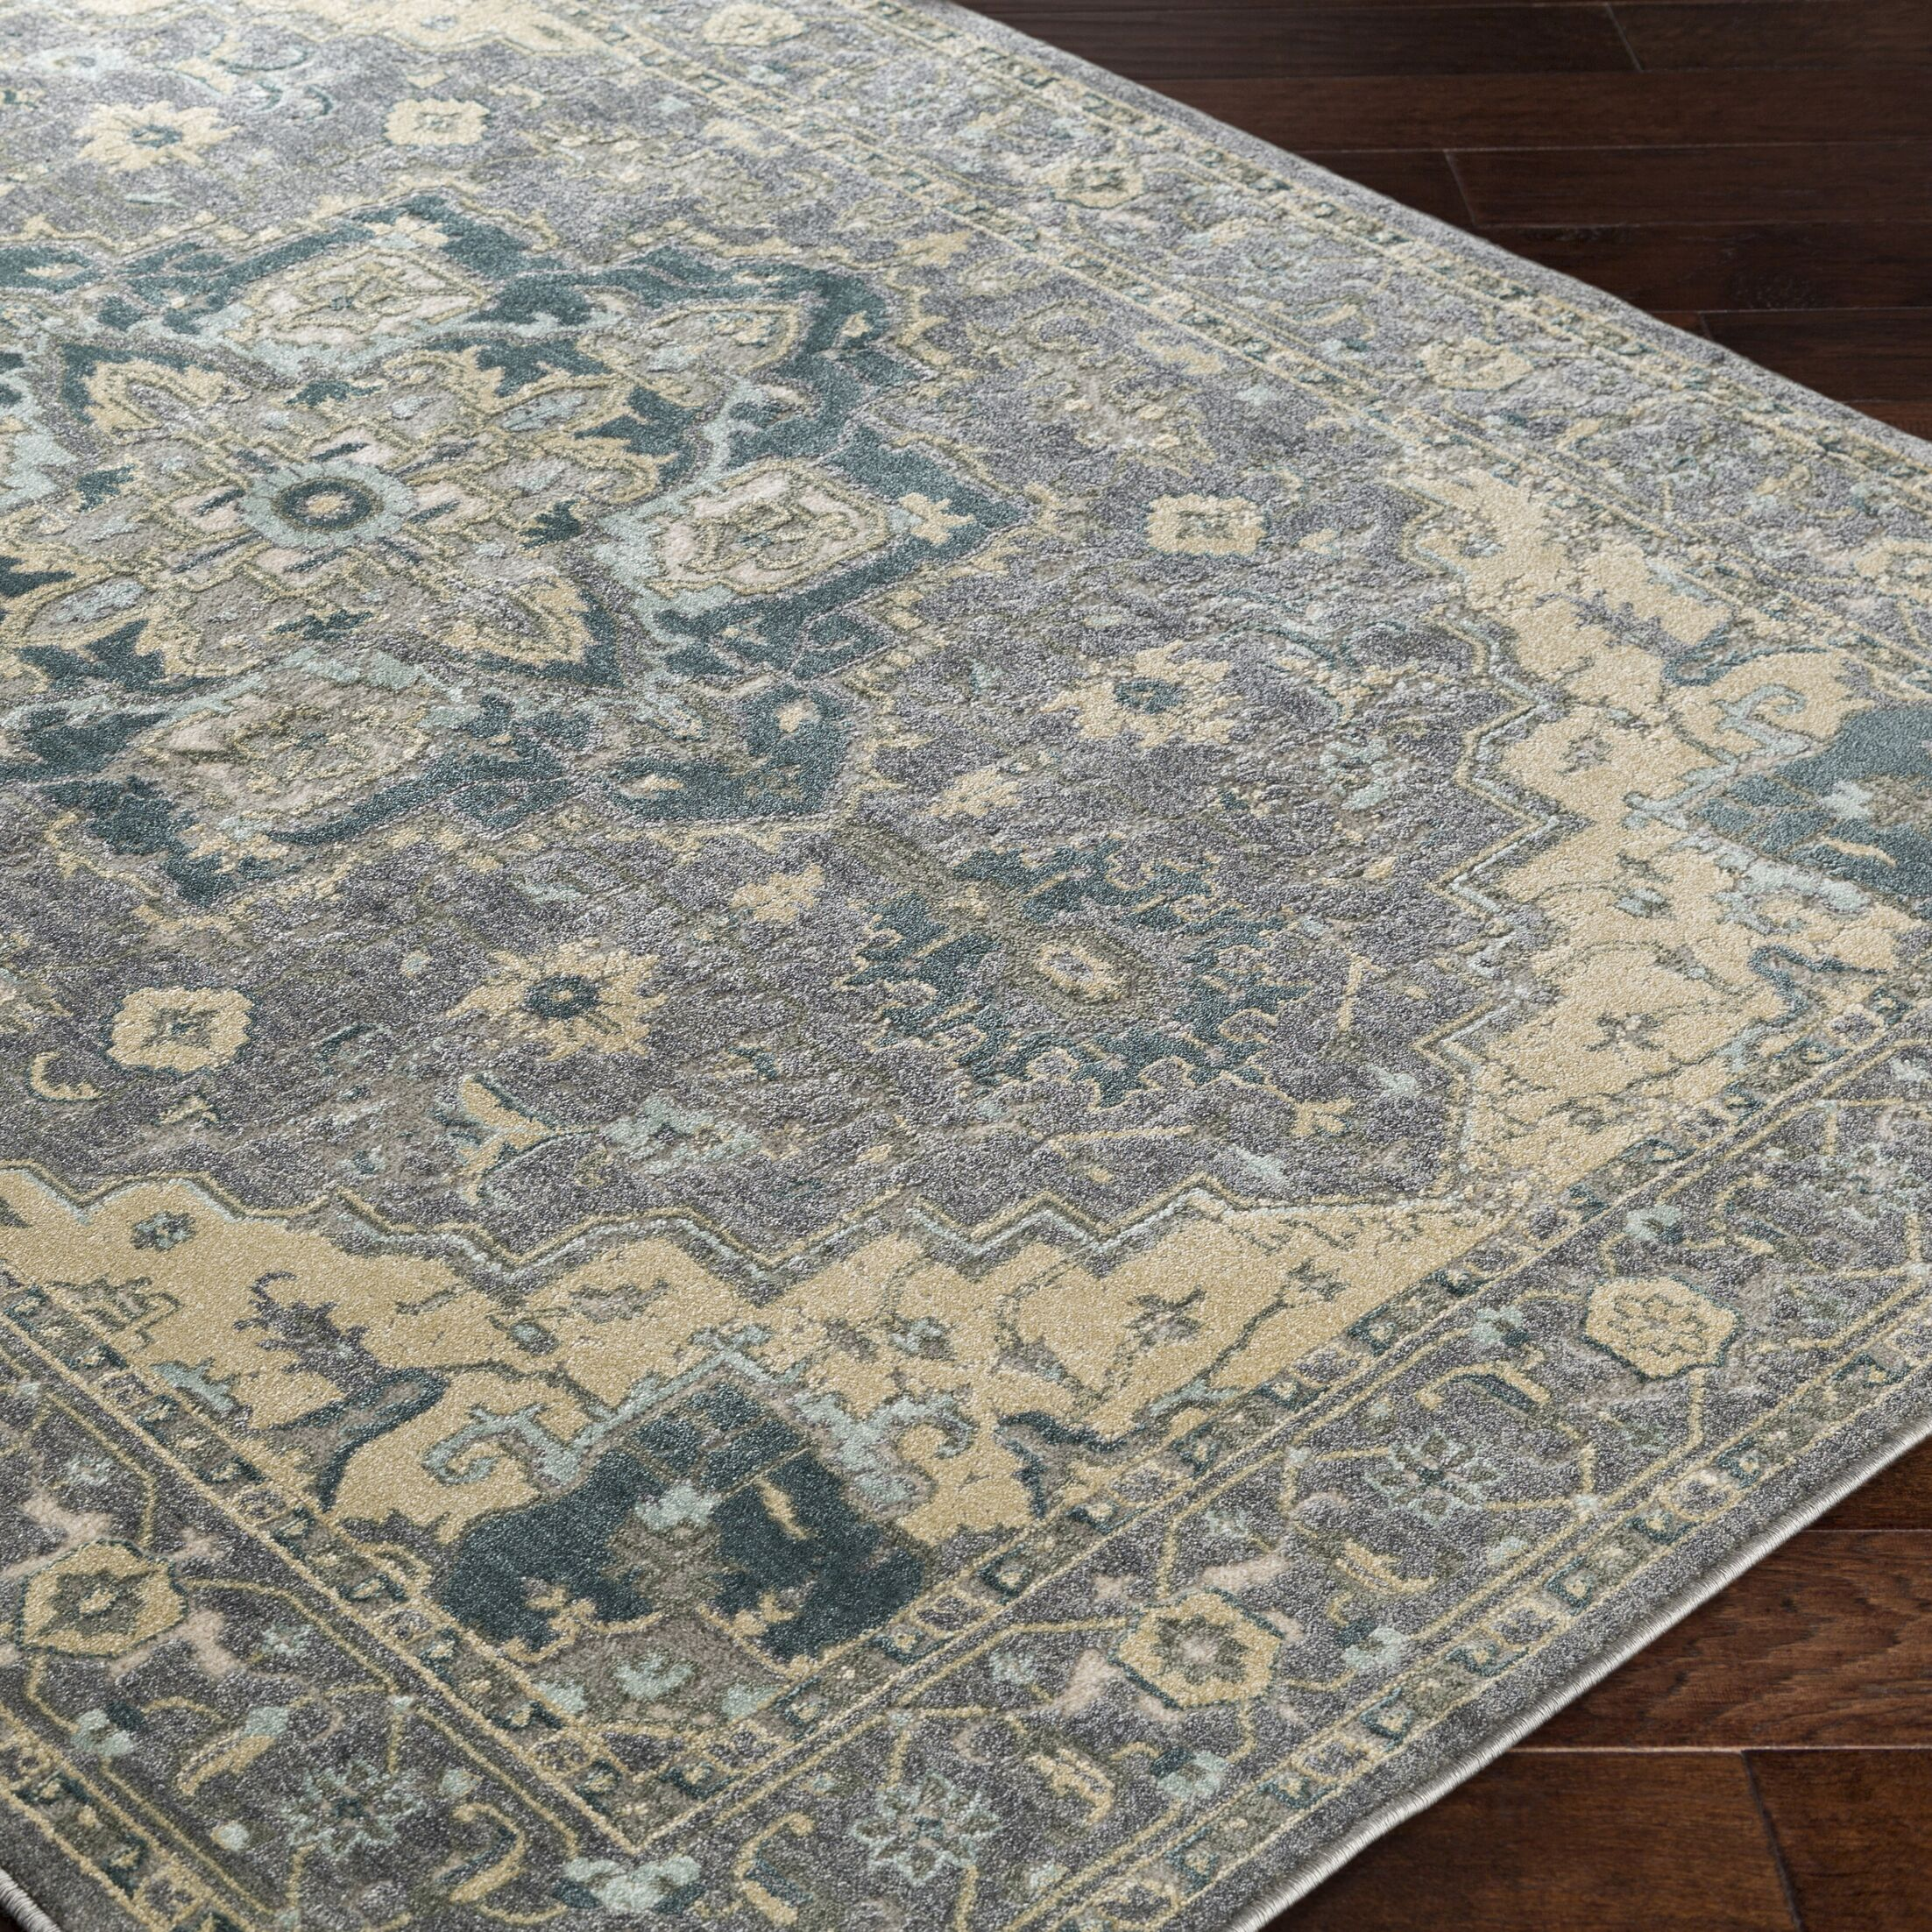 Sommerfield Gray Area Rug Rug Size: Rectangle 5'3